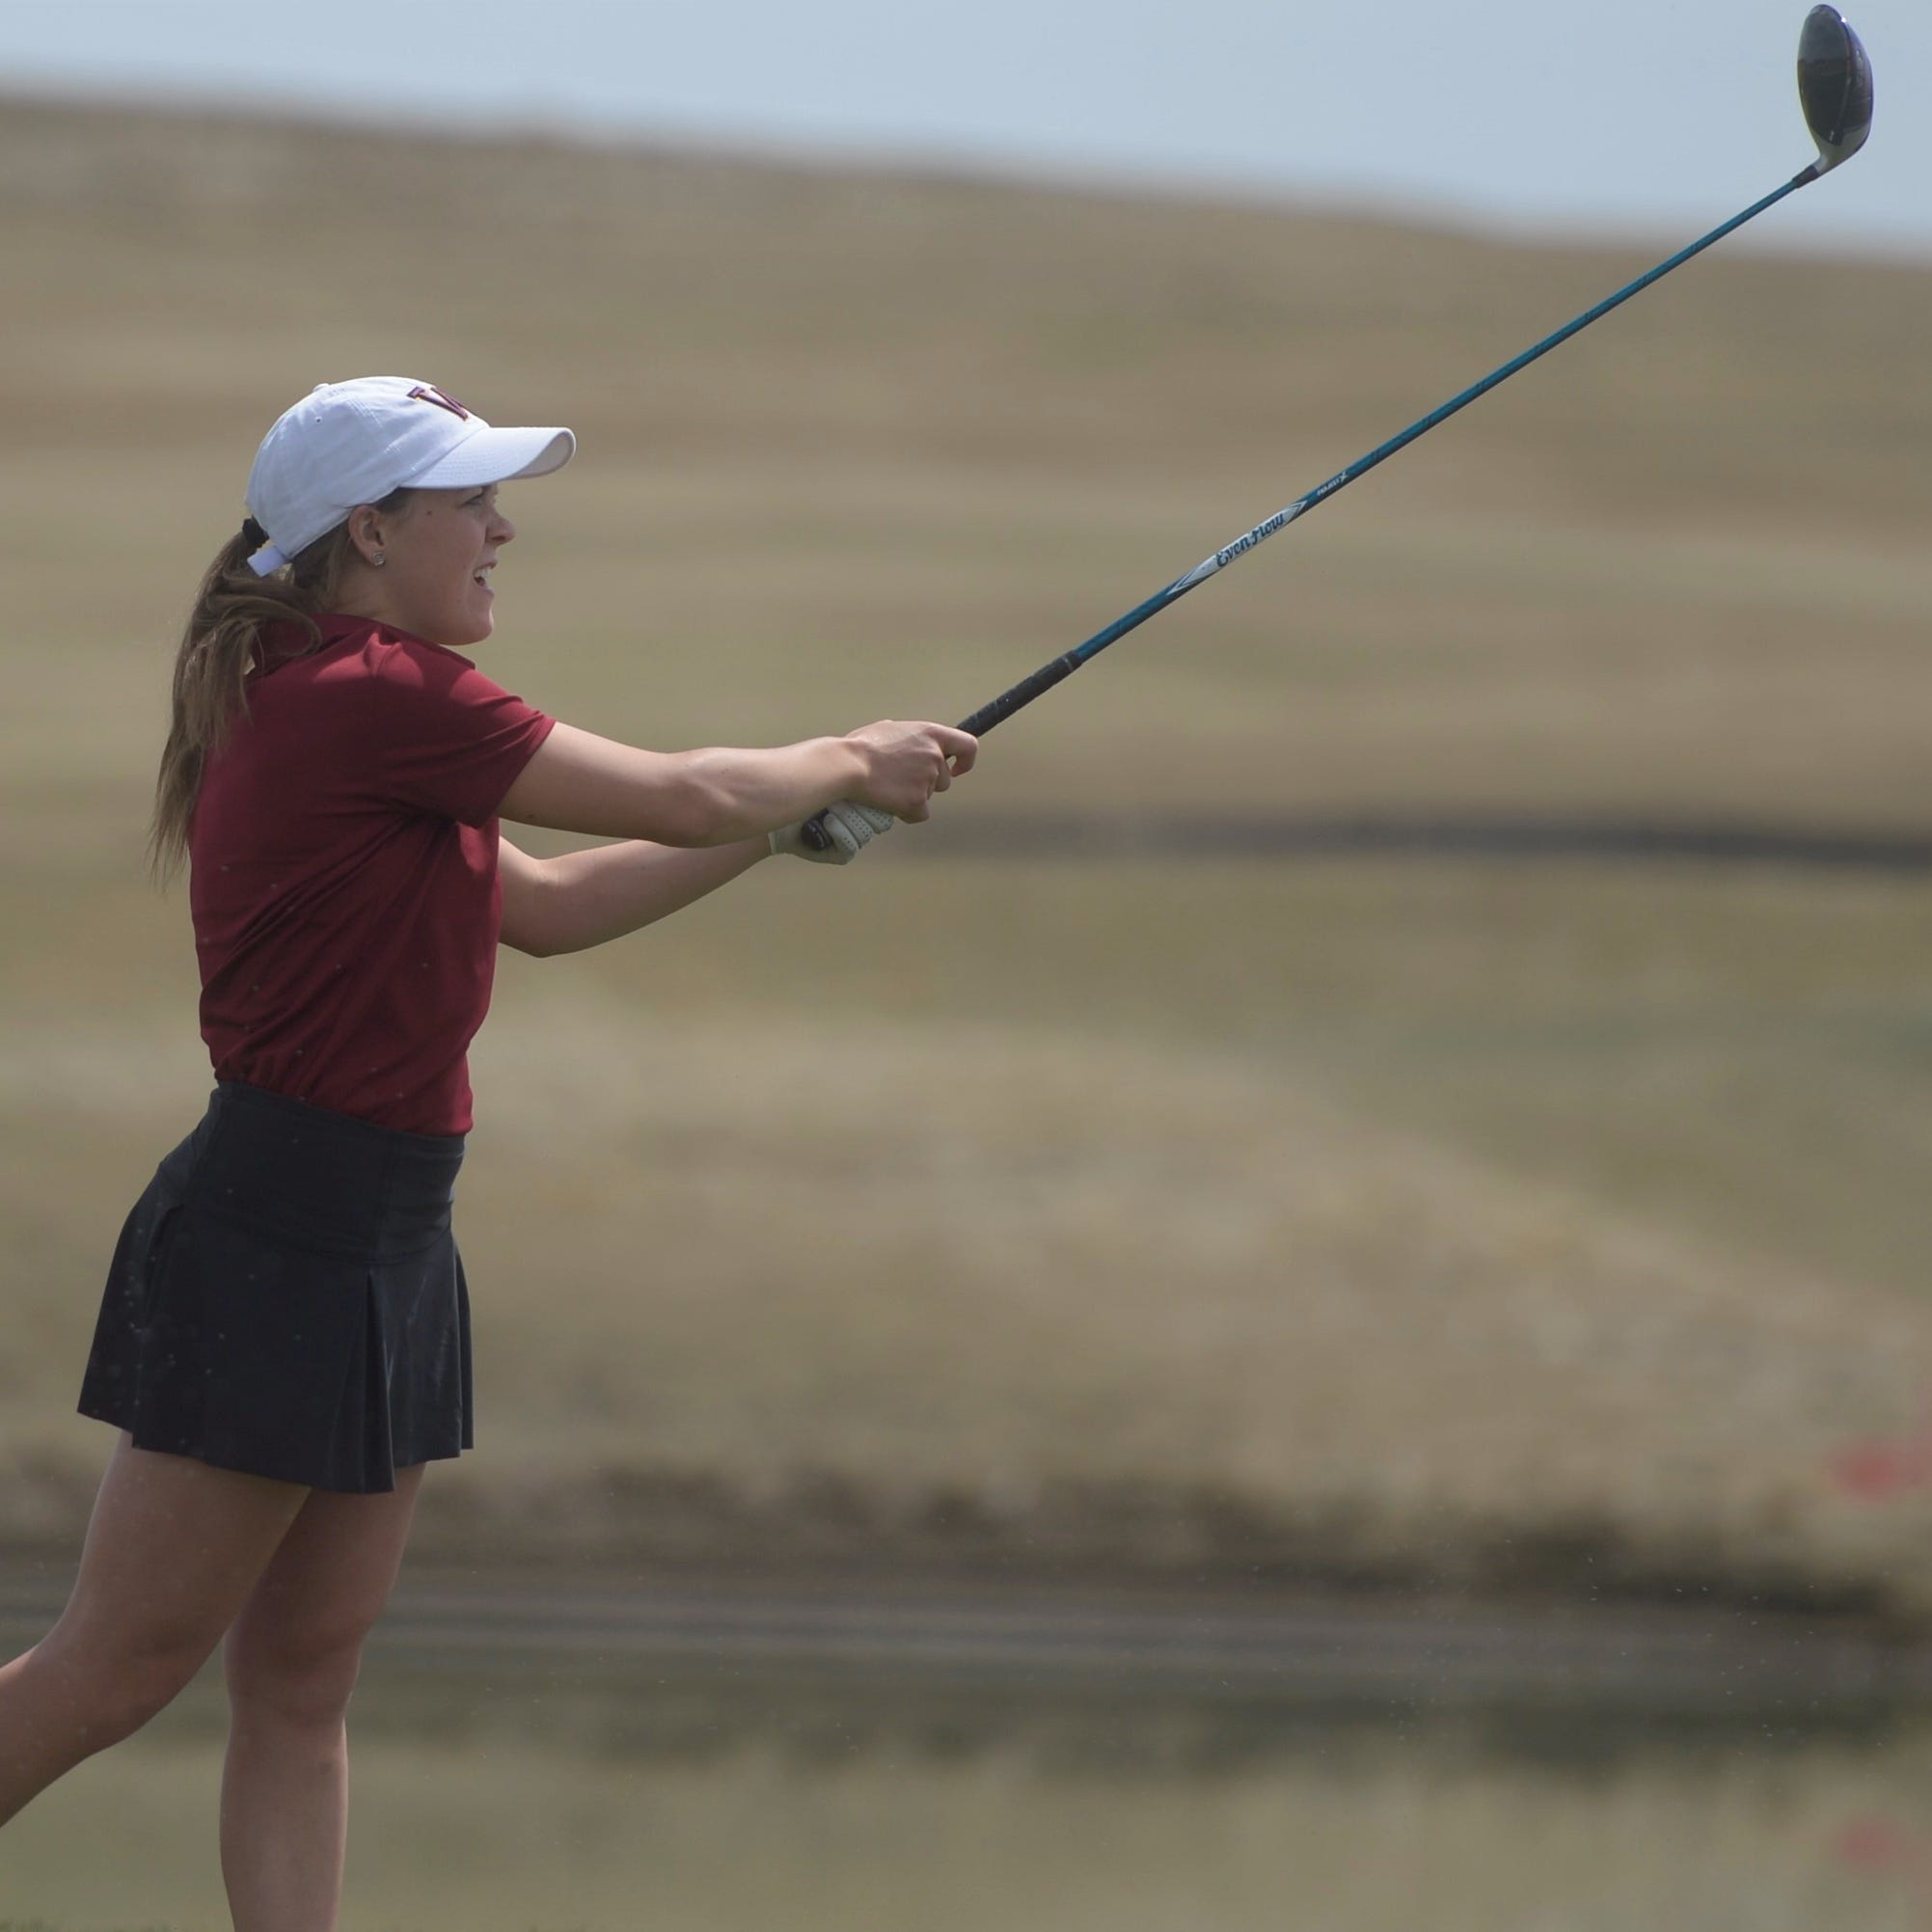 Windsor's Jessica Zapf didn't golf until 8th grade, now she's one of the best in Colorado